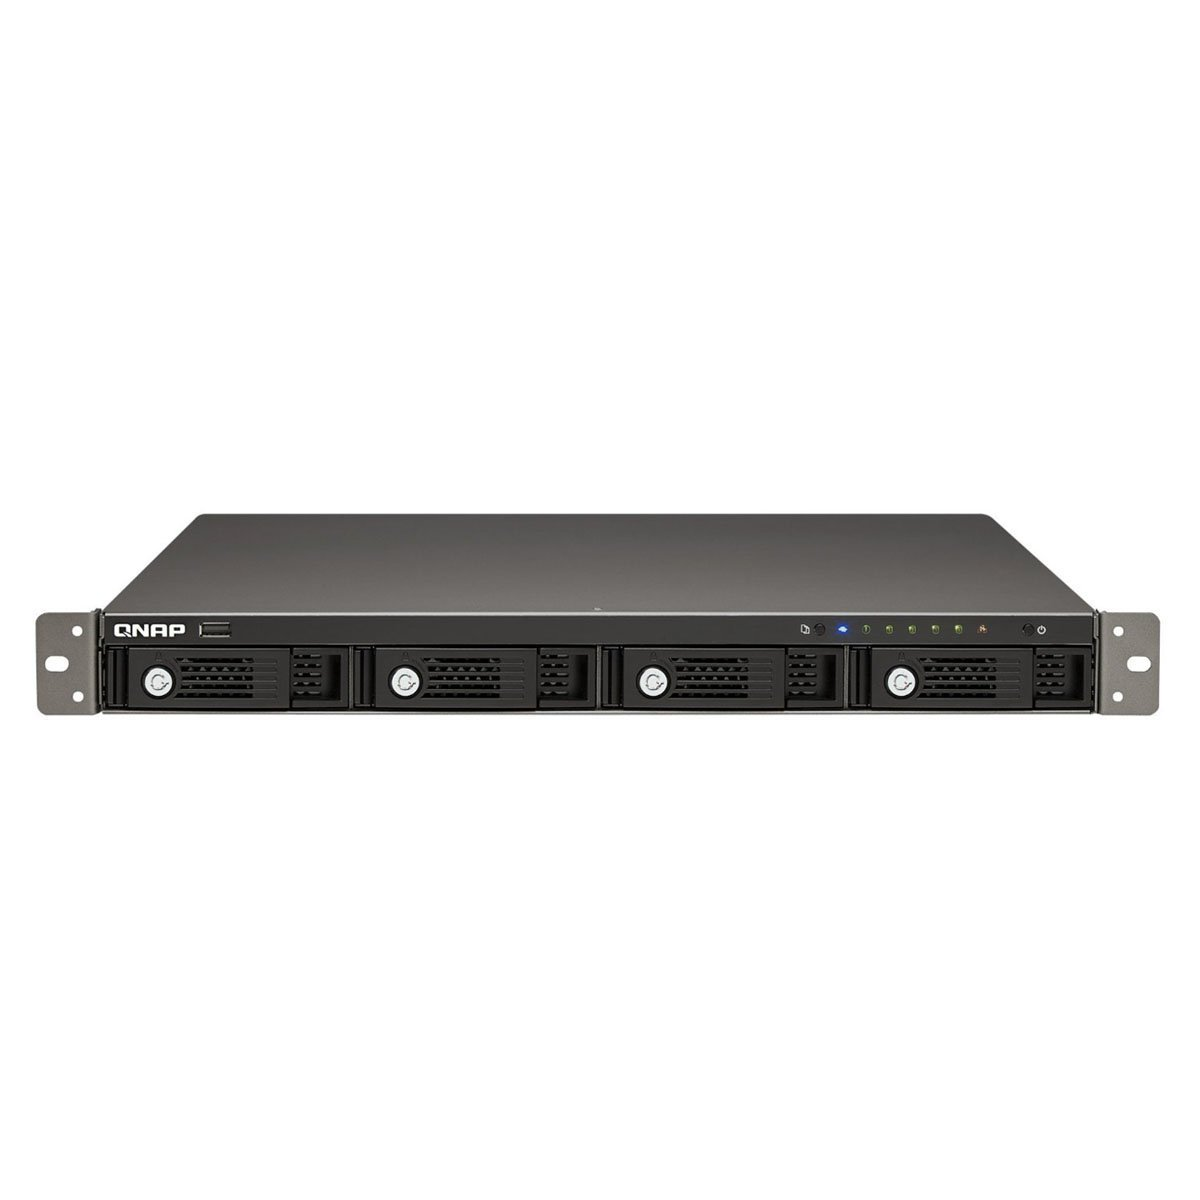 QNAP TS-420U 4-bay 1U iSCSI NAS, Hot-swappable (TS-420U)